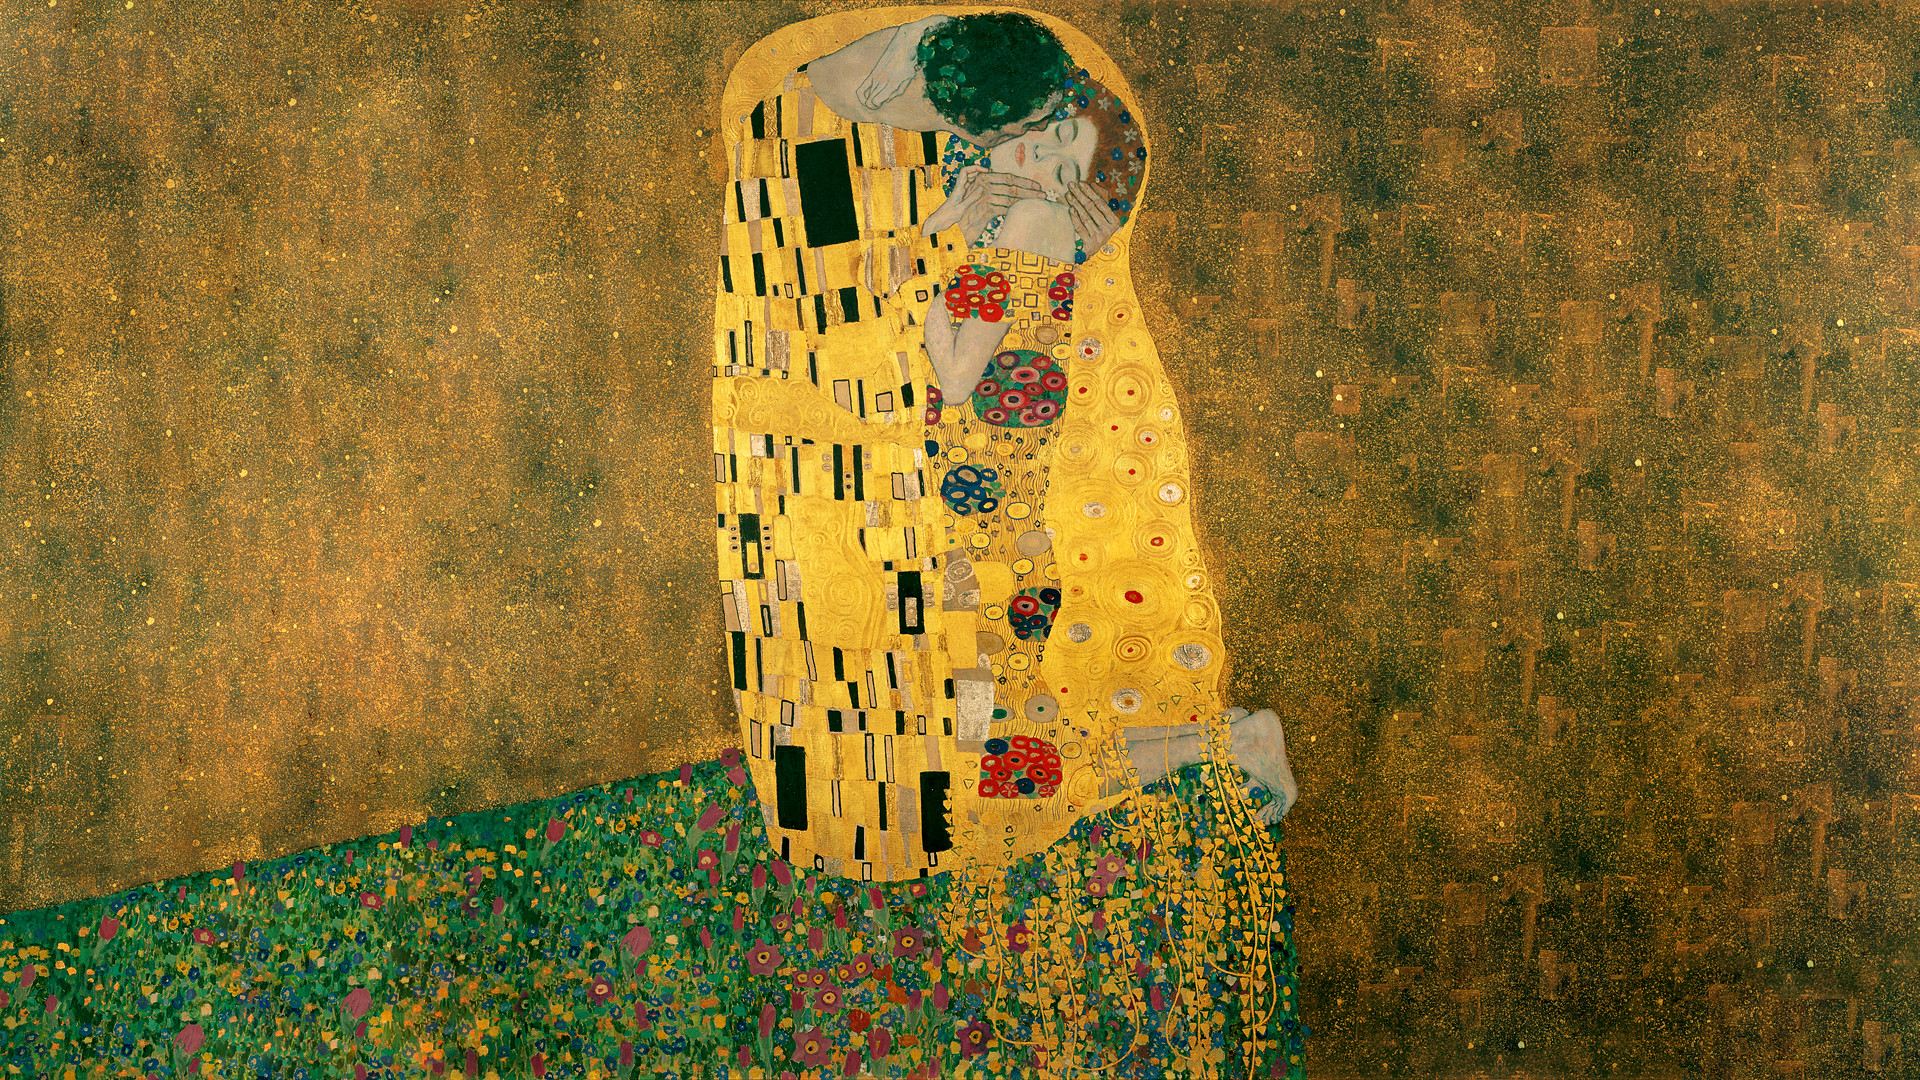 1920x1080 Gustav Klimt - The Kiss [1920 x 1080] ...